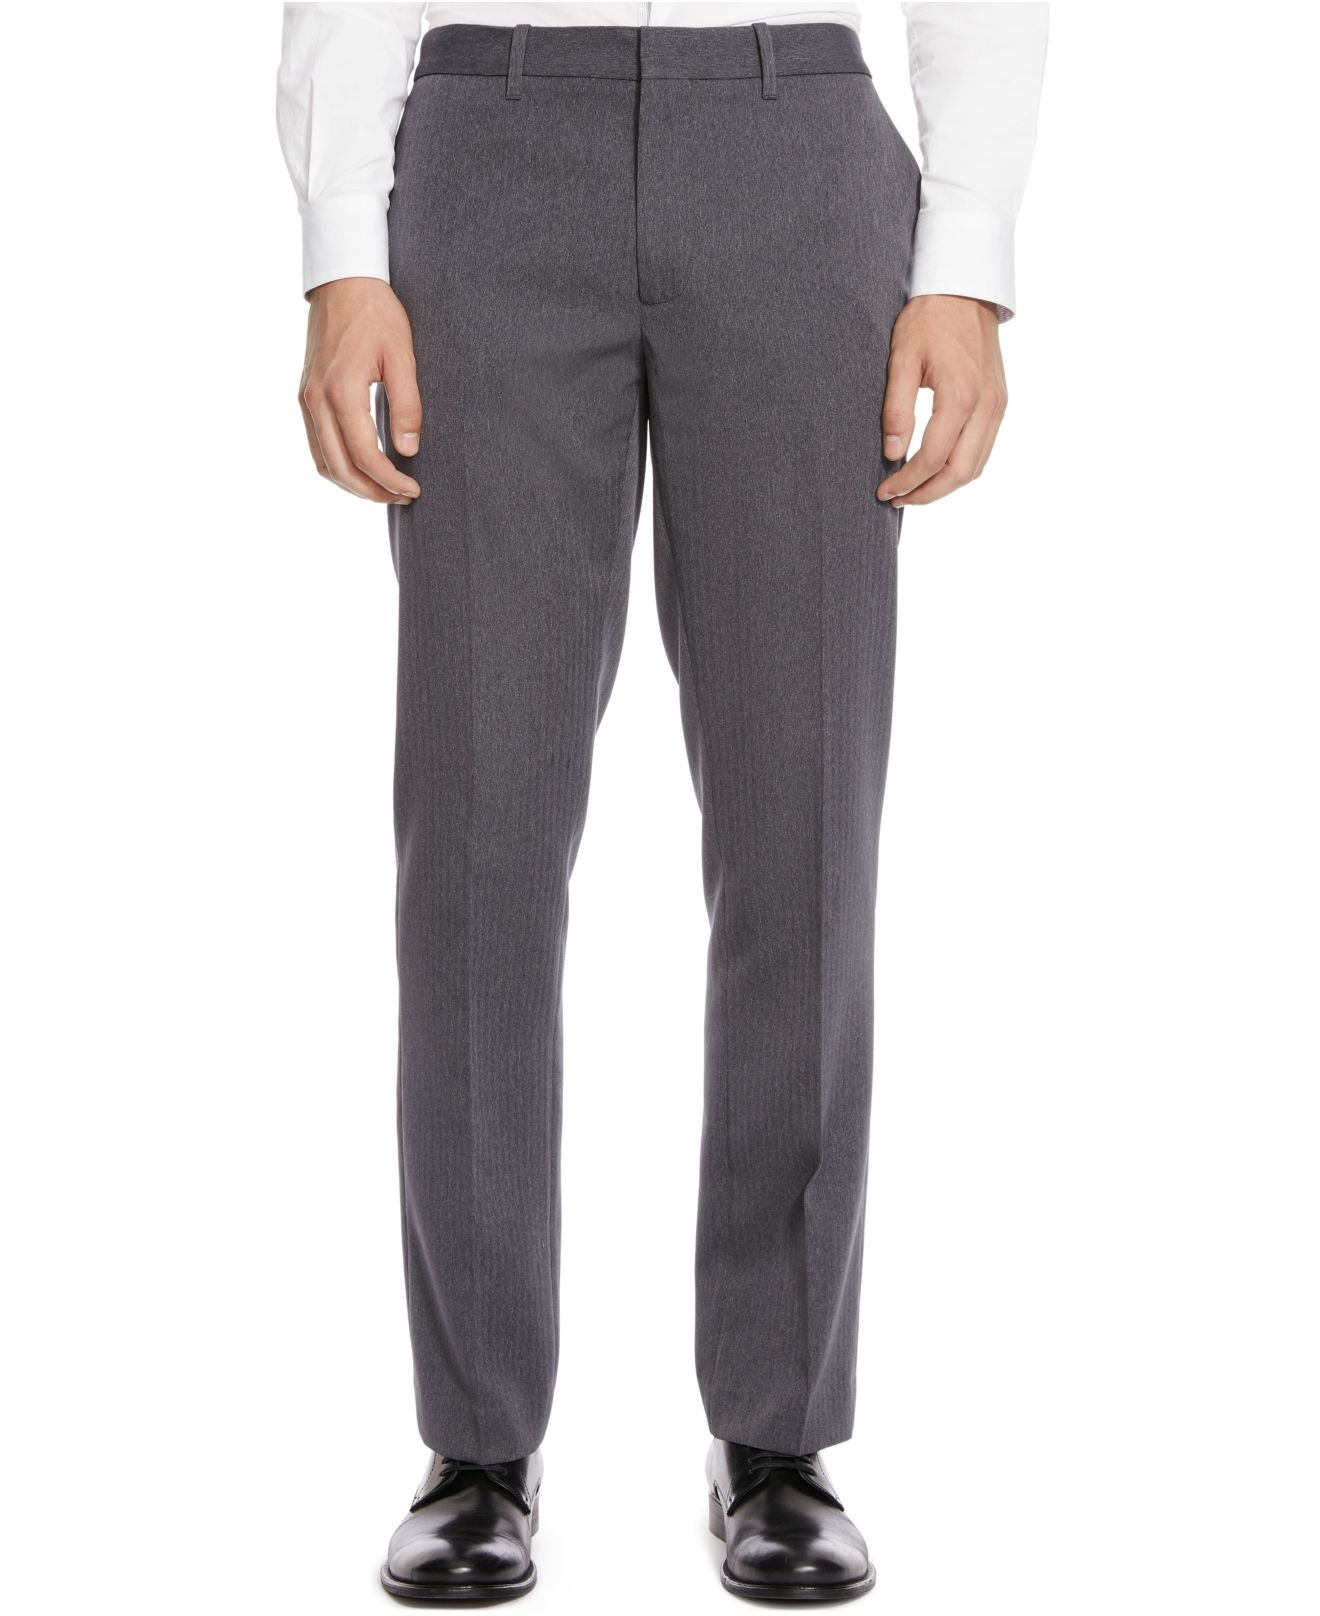 Slim Fit Suit Pant Kenneth Cole Reaction Get Authentic Sale Online O401oyPuw